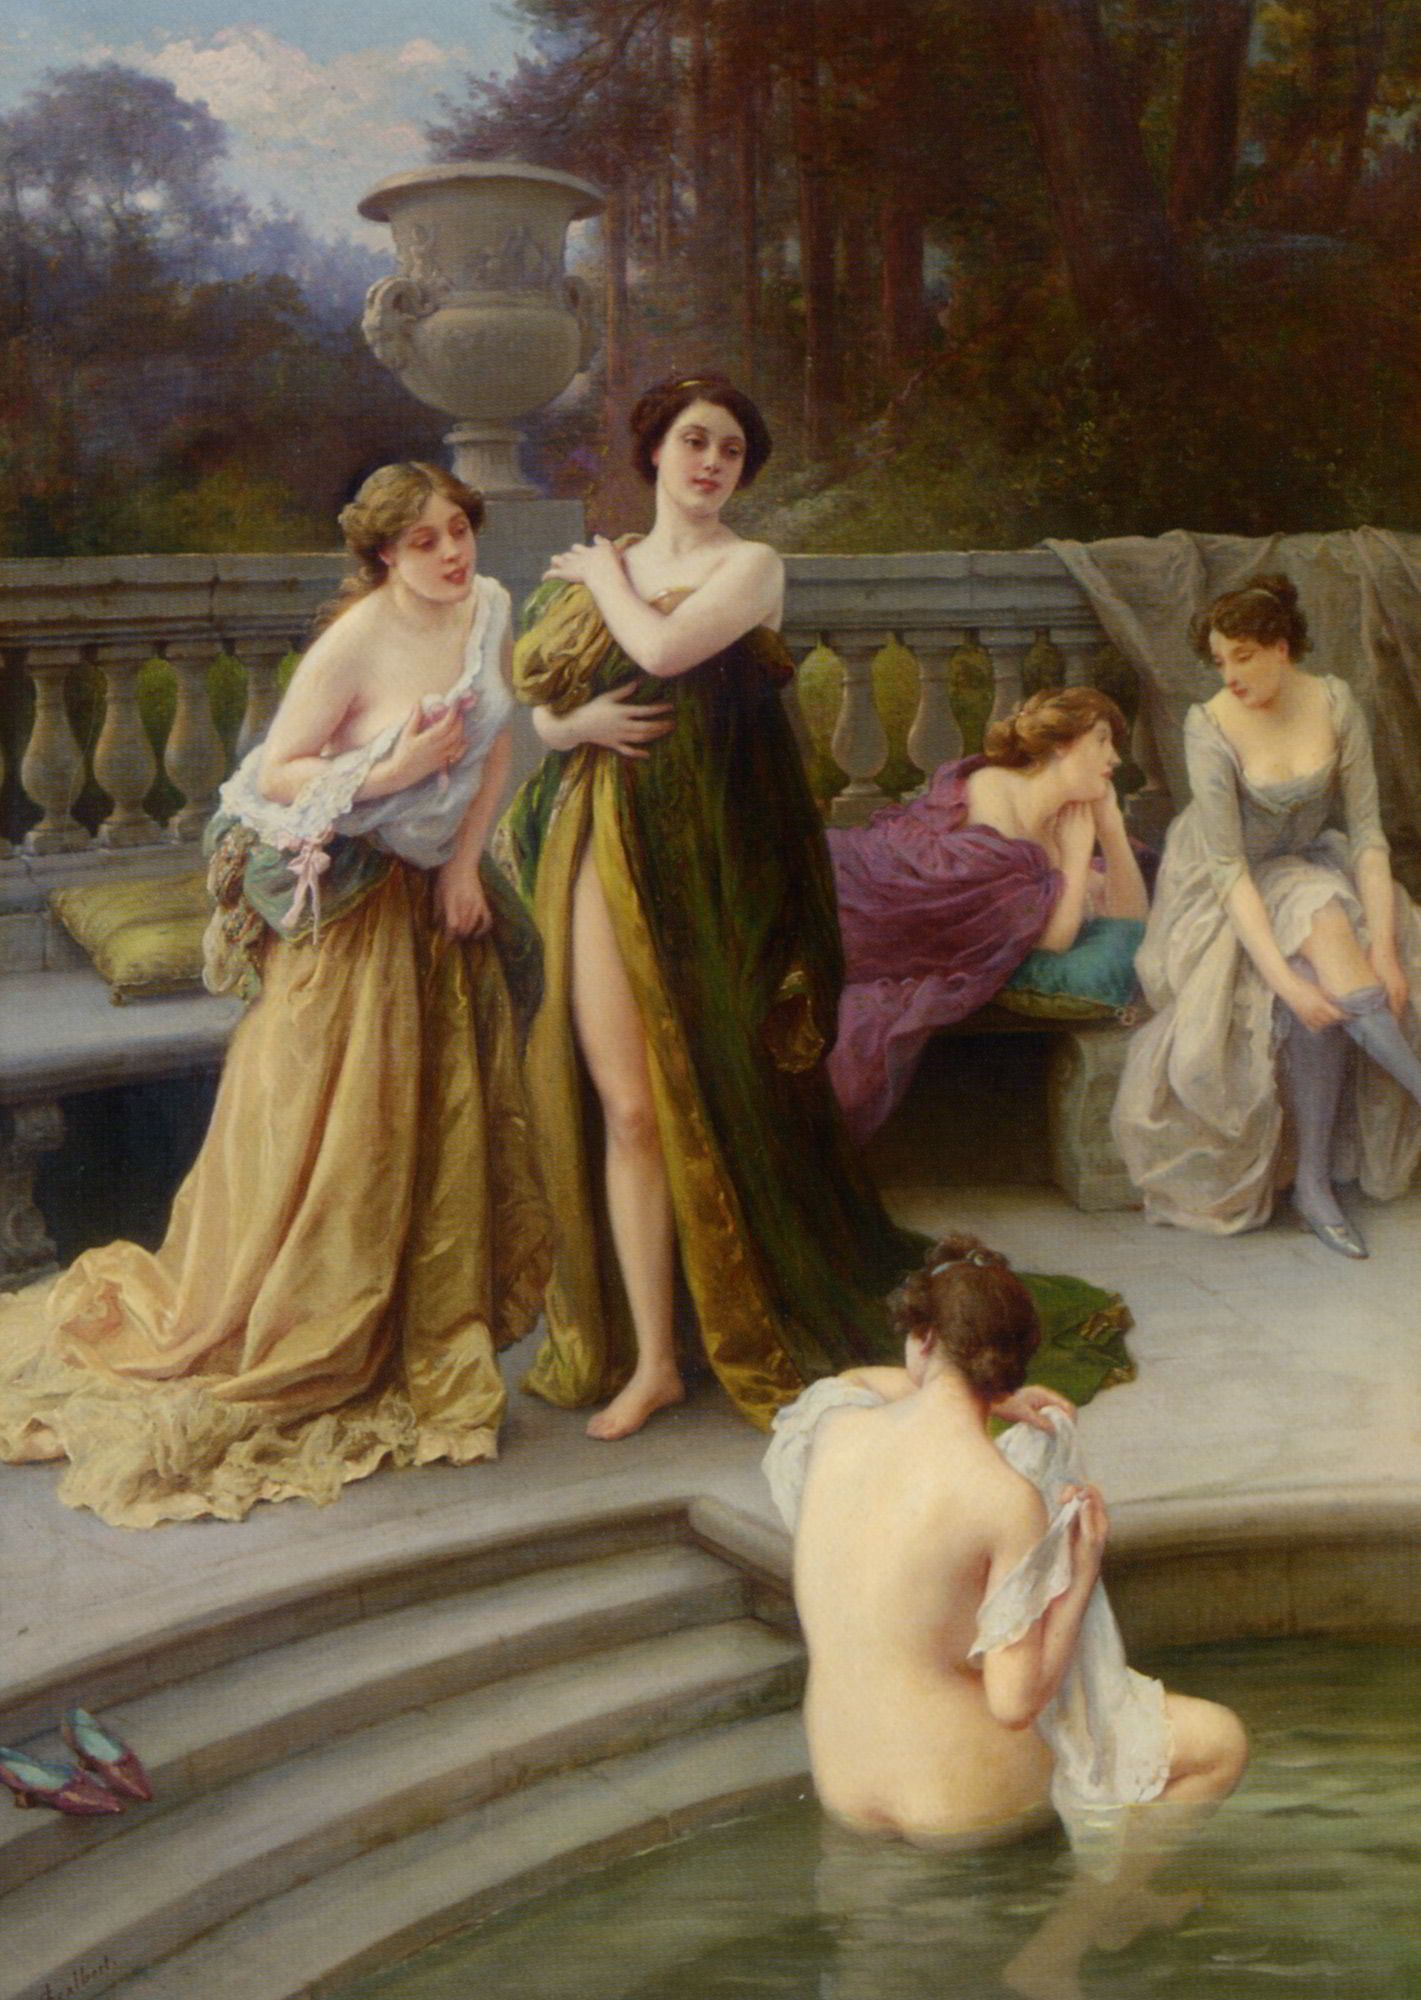 A Midday Bath by Jules Scalbert - 336.4KB